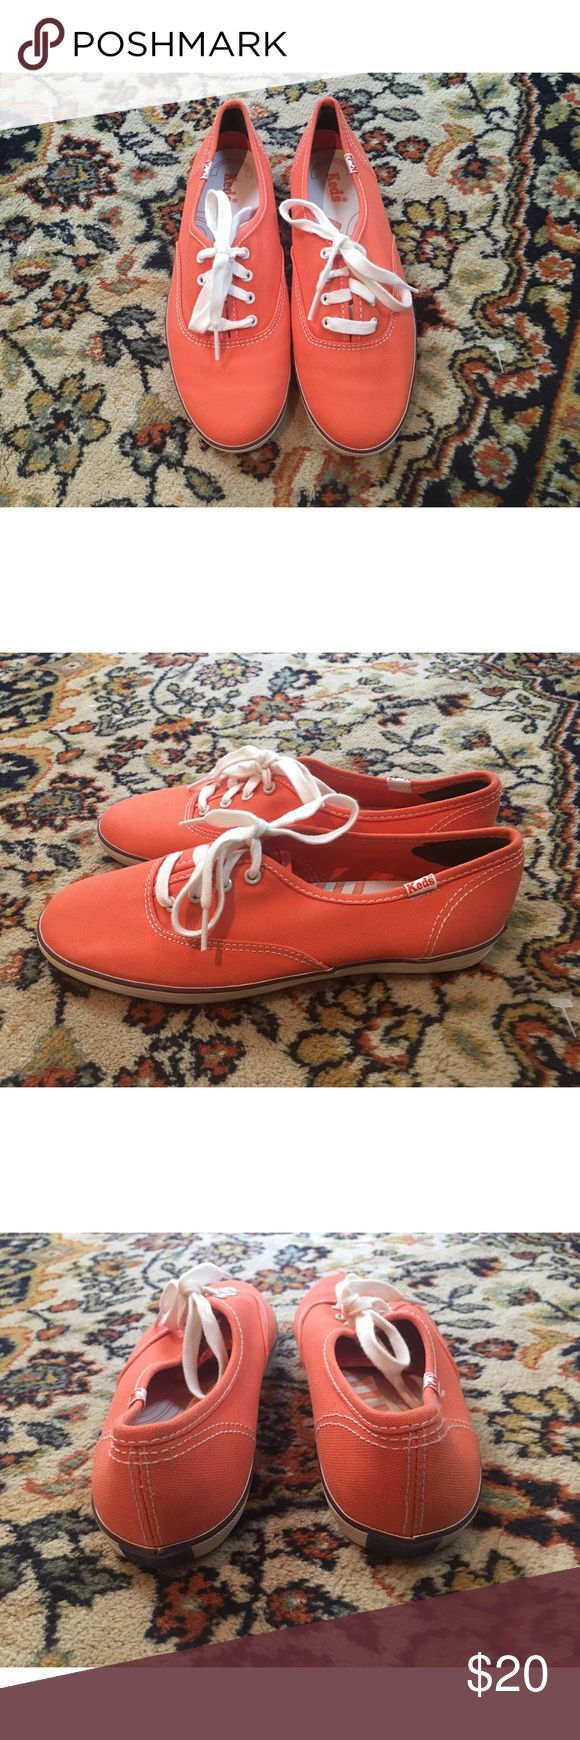 NEW Keds Tennis Shoes Orange Women's Size 6.5 🔥 New Without Box! Size 6.5 Classic Keds Tennis Shoes in Peachy Orange 🌿🌻 Urban Outfitters Shoes